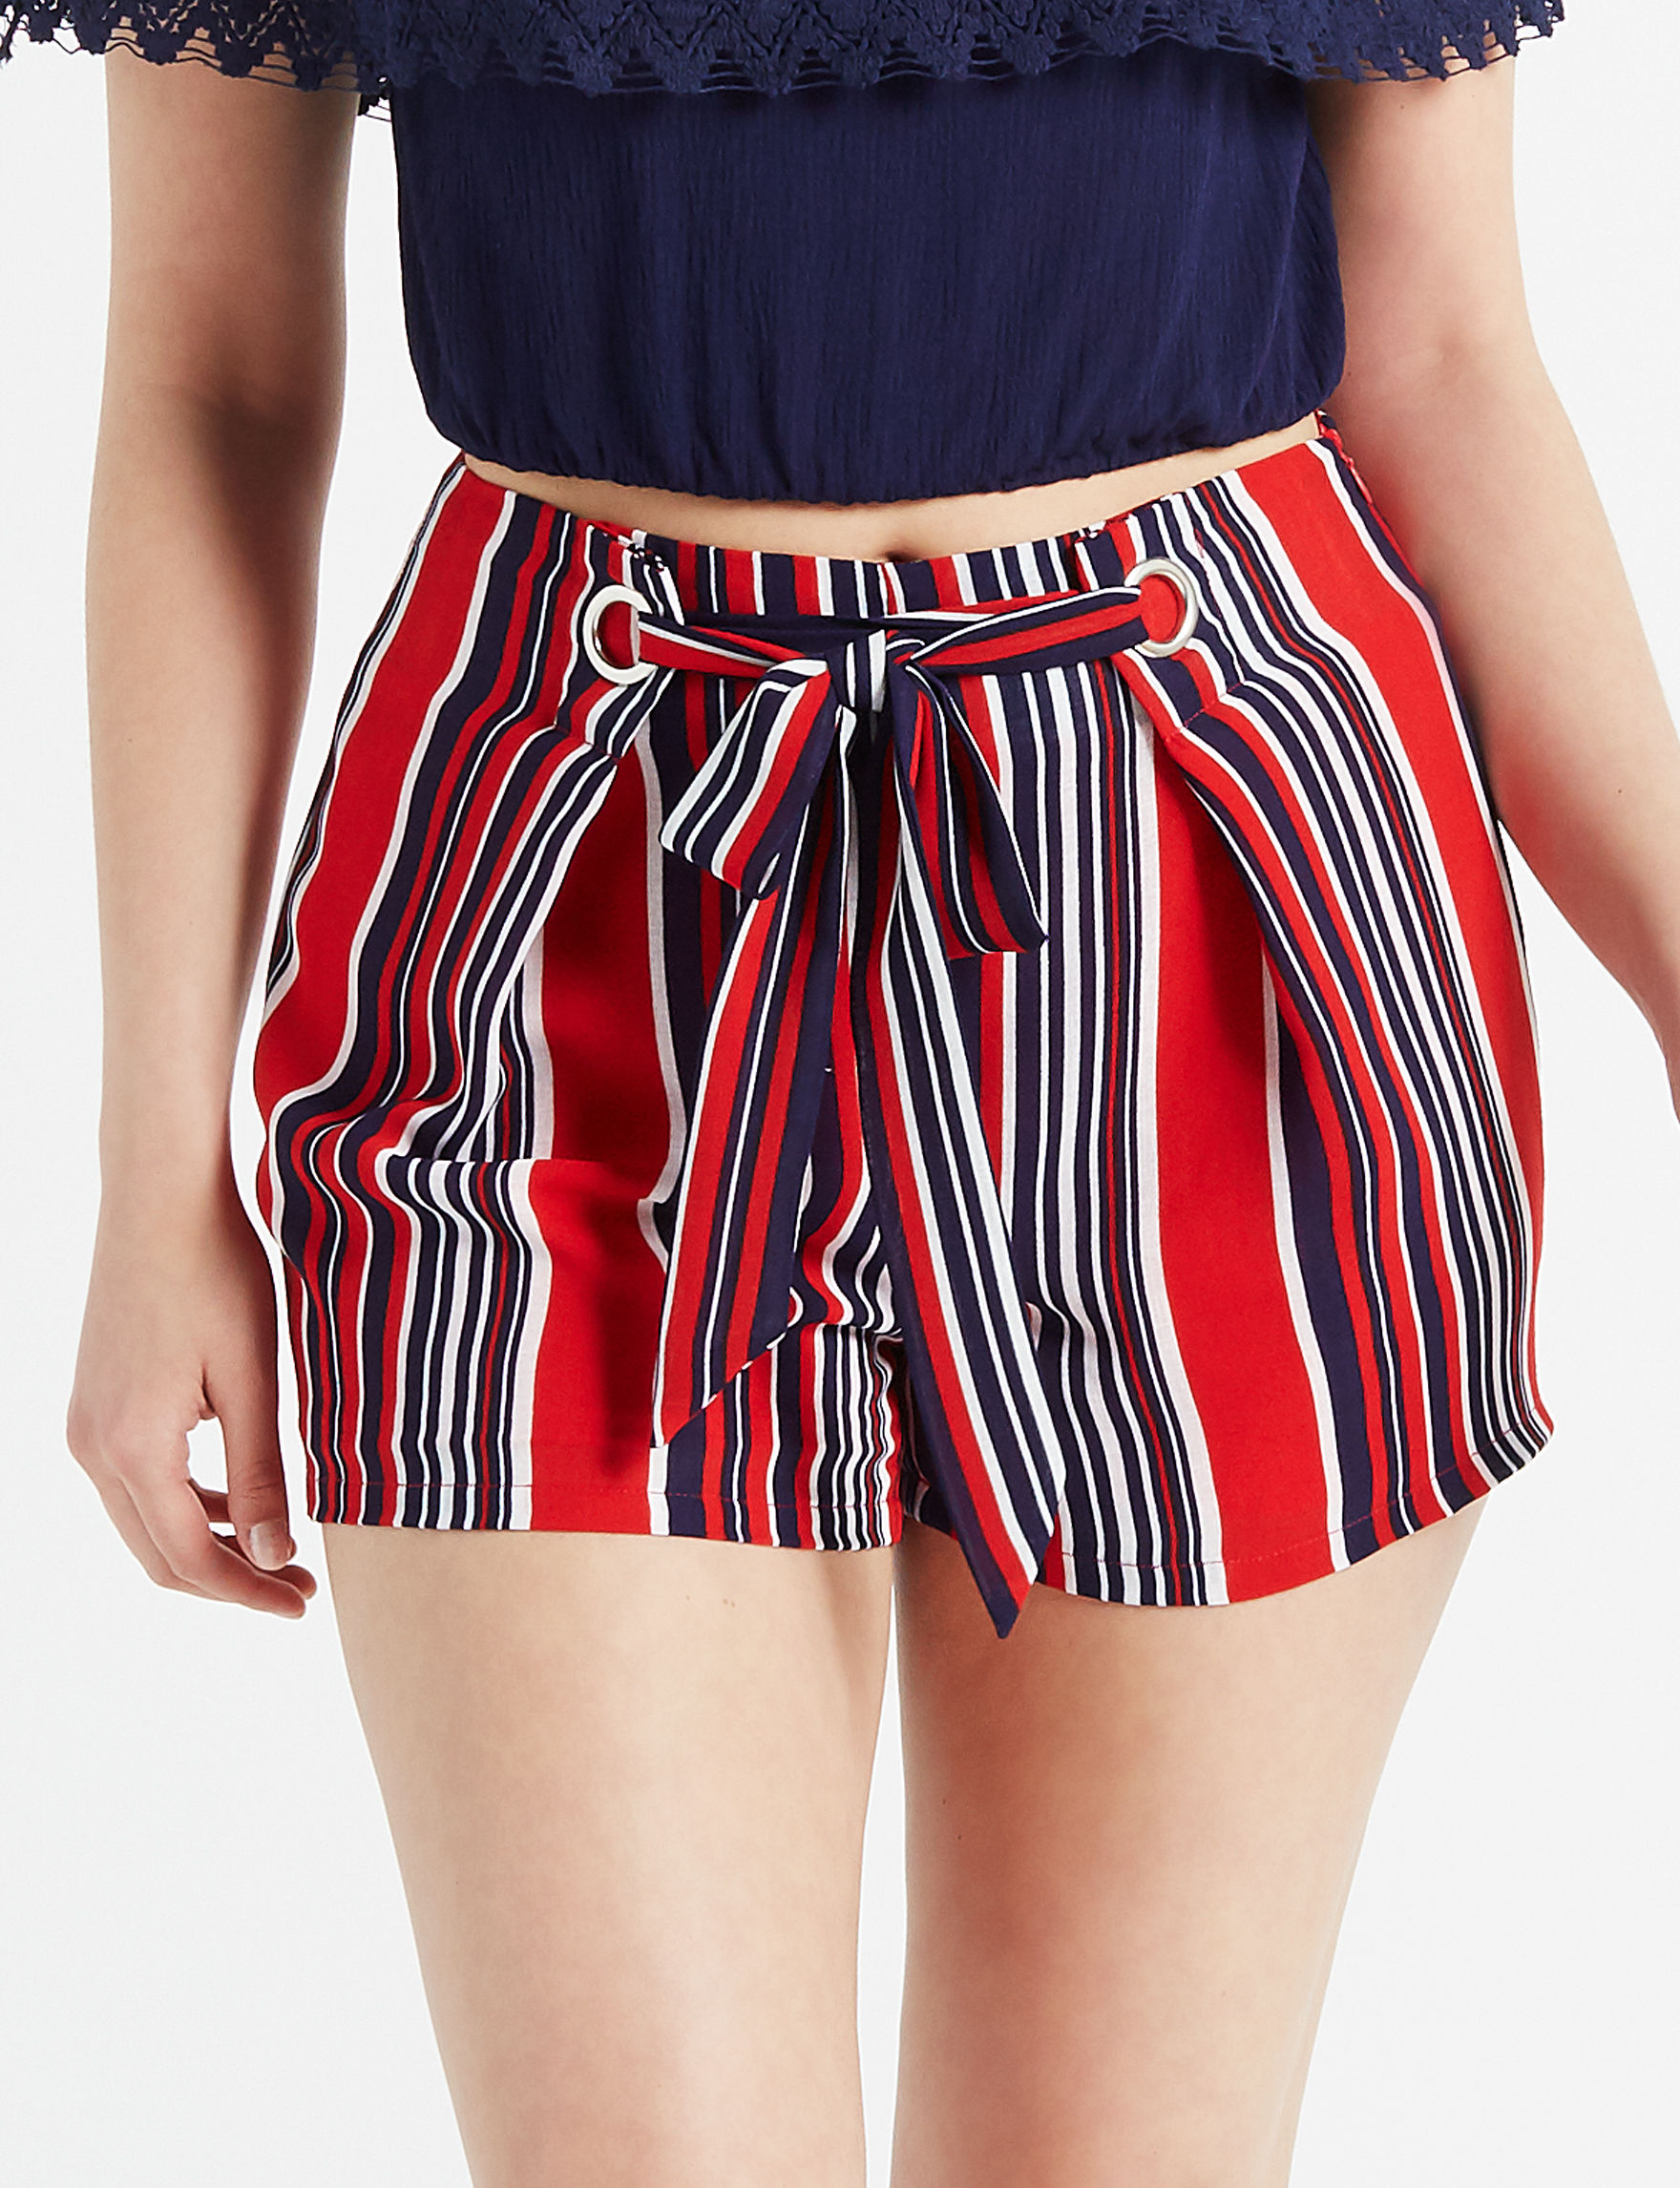 Charmed Hearts Red / Navy Soft Shorts